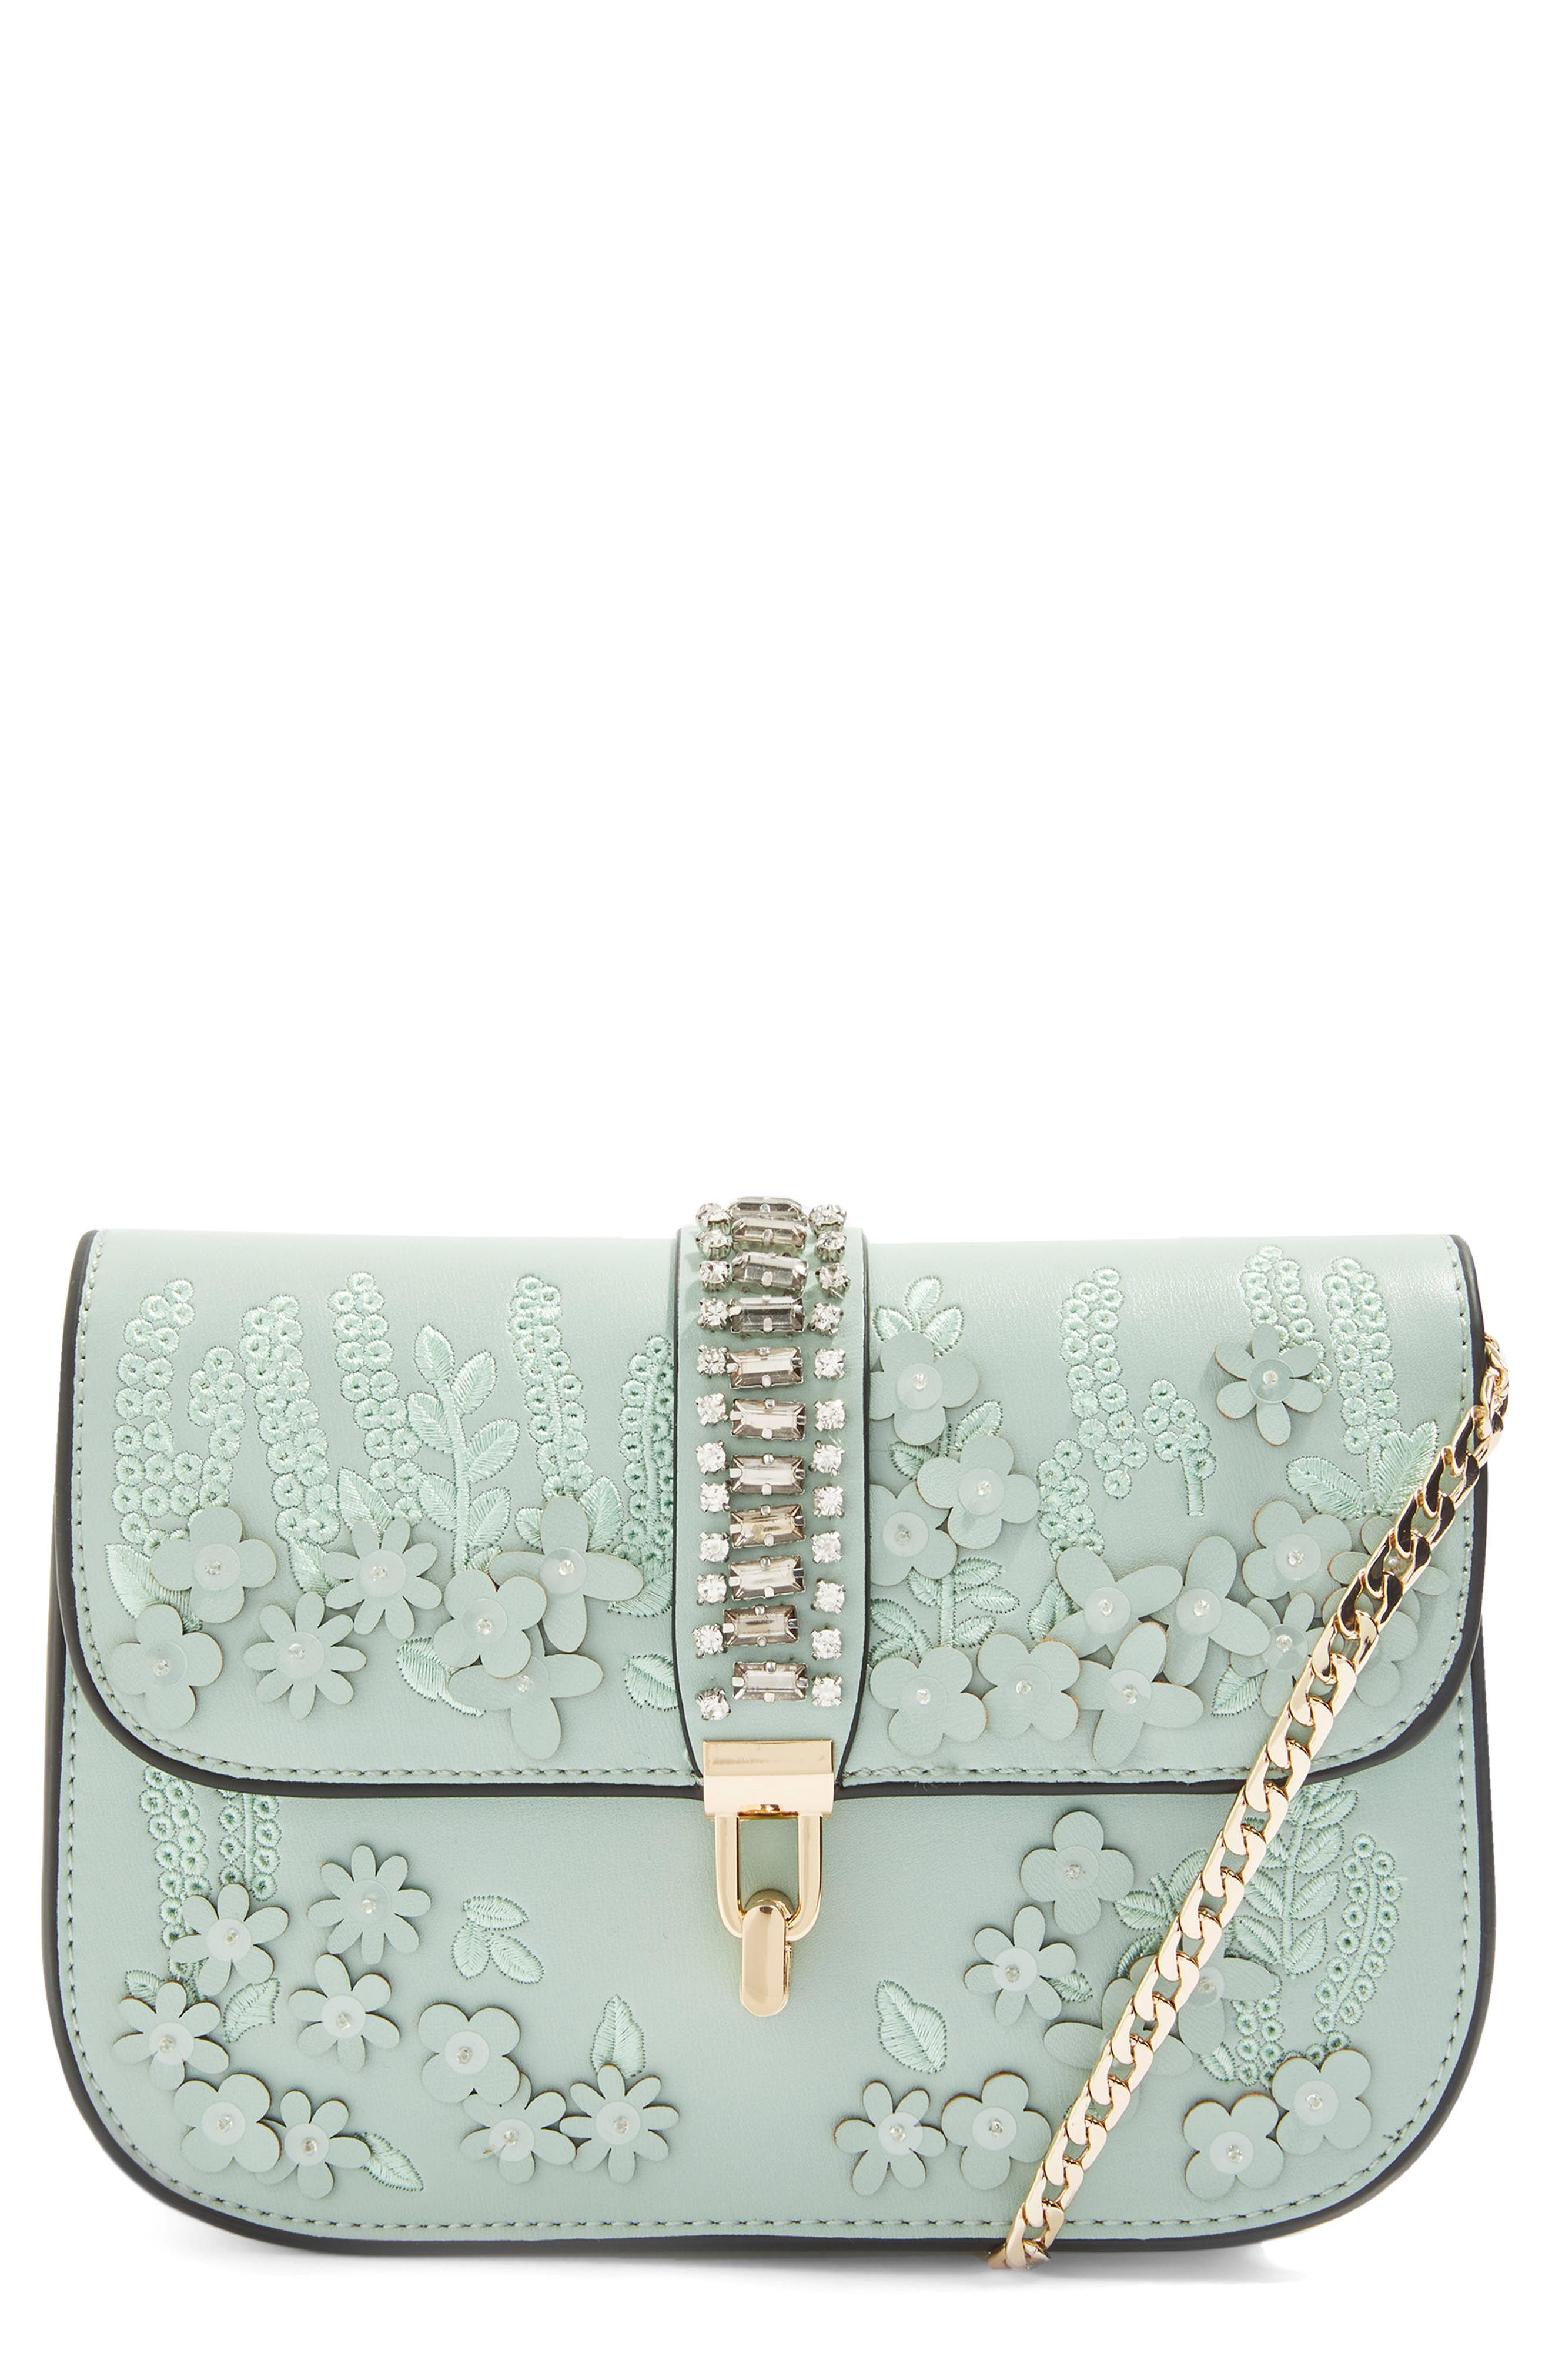 Petal 3D Flower Embroidered Crossbody Bag,                             Main thumbnail 1, color,                             Mint